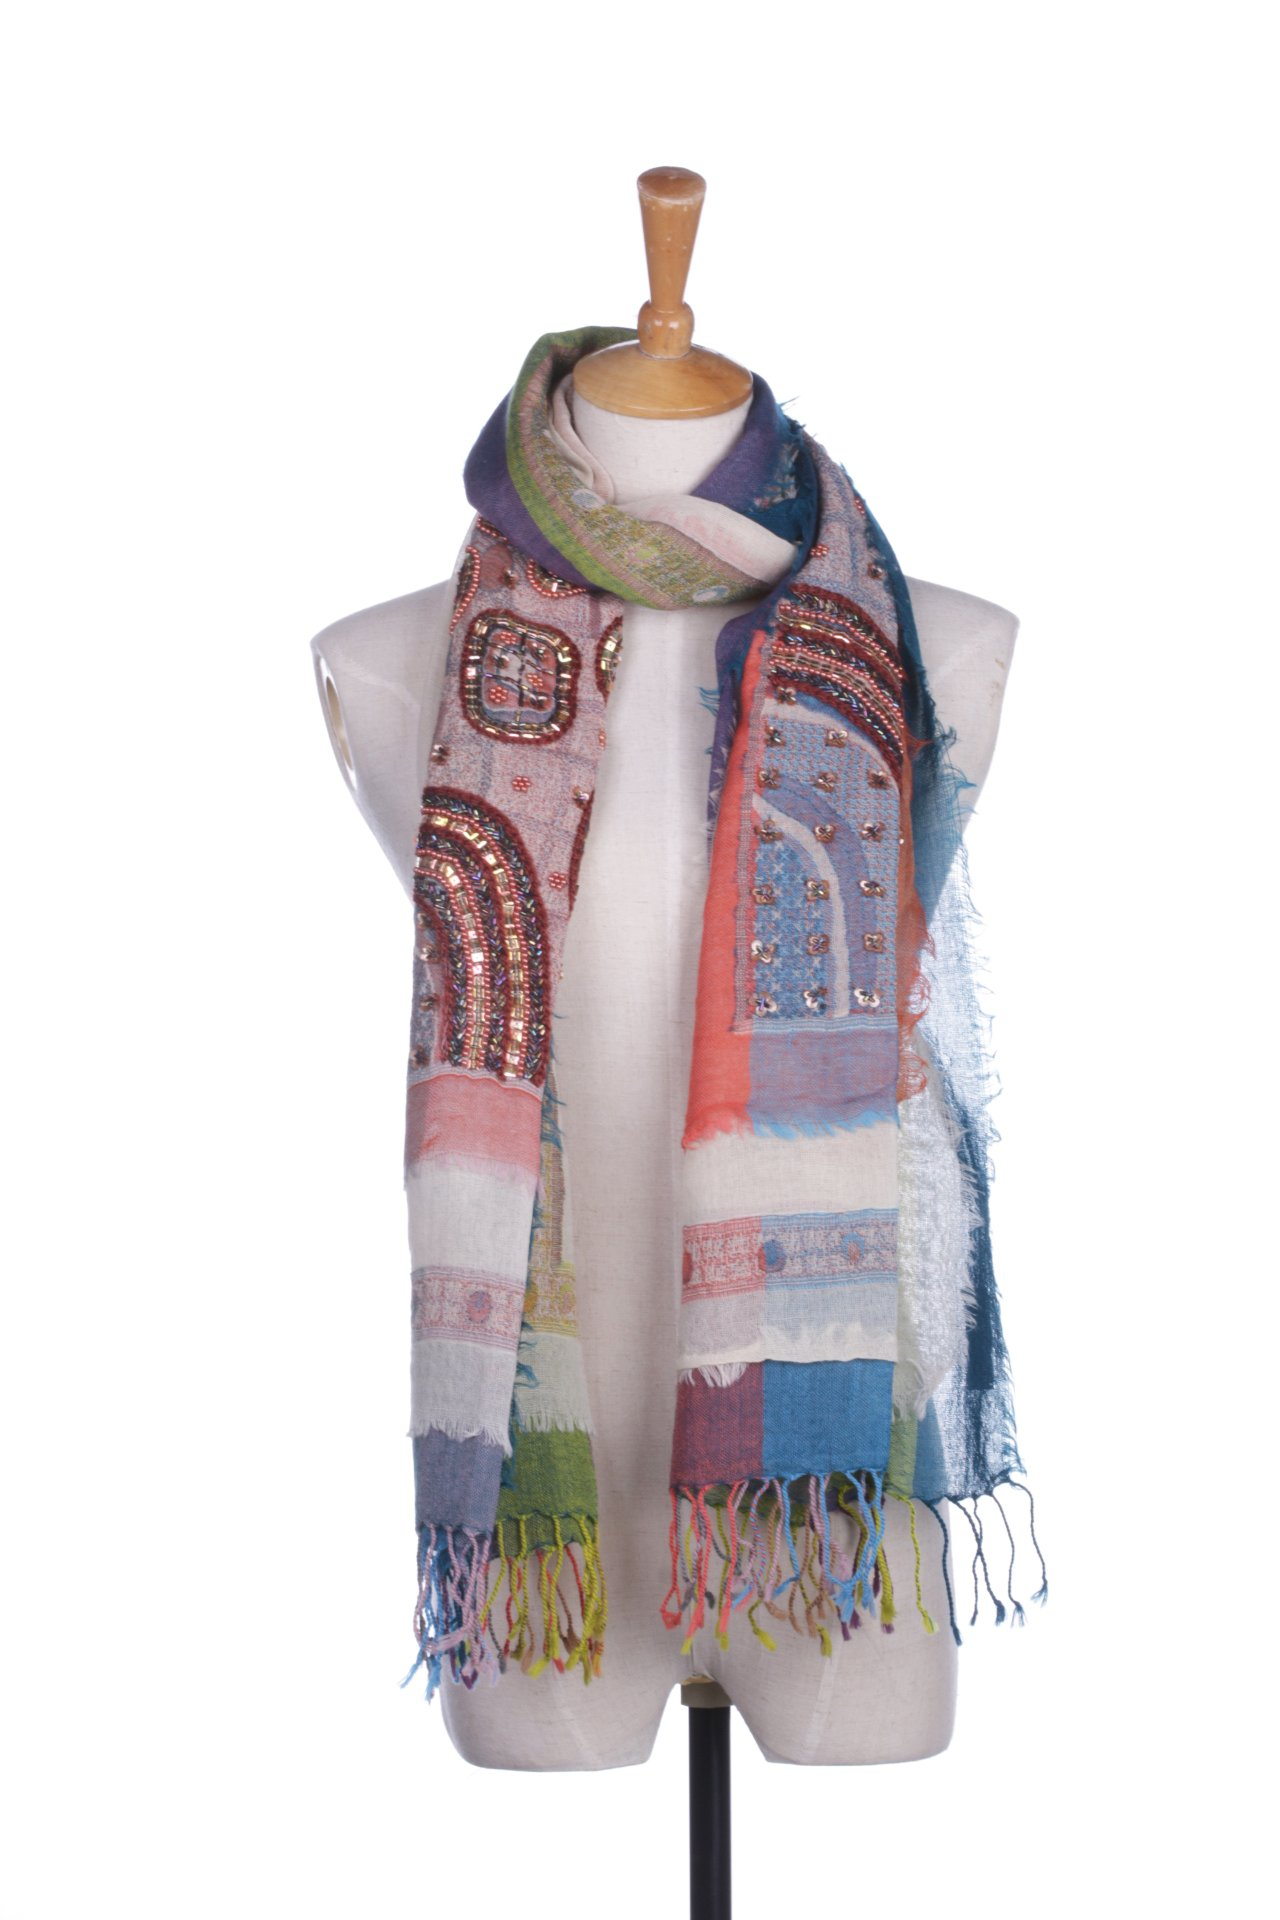 Hansile Fashion Autumn Winter Indian Style 100% Wool Warm Embroidery Scarf